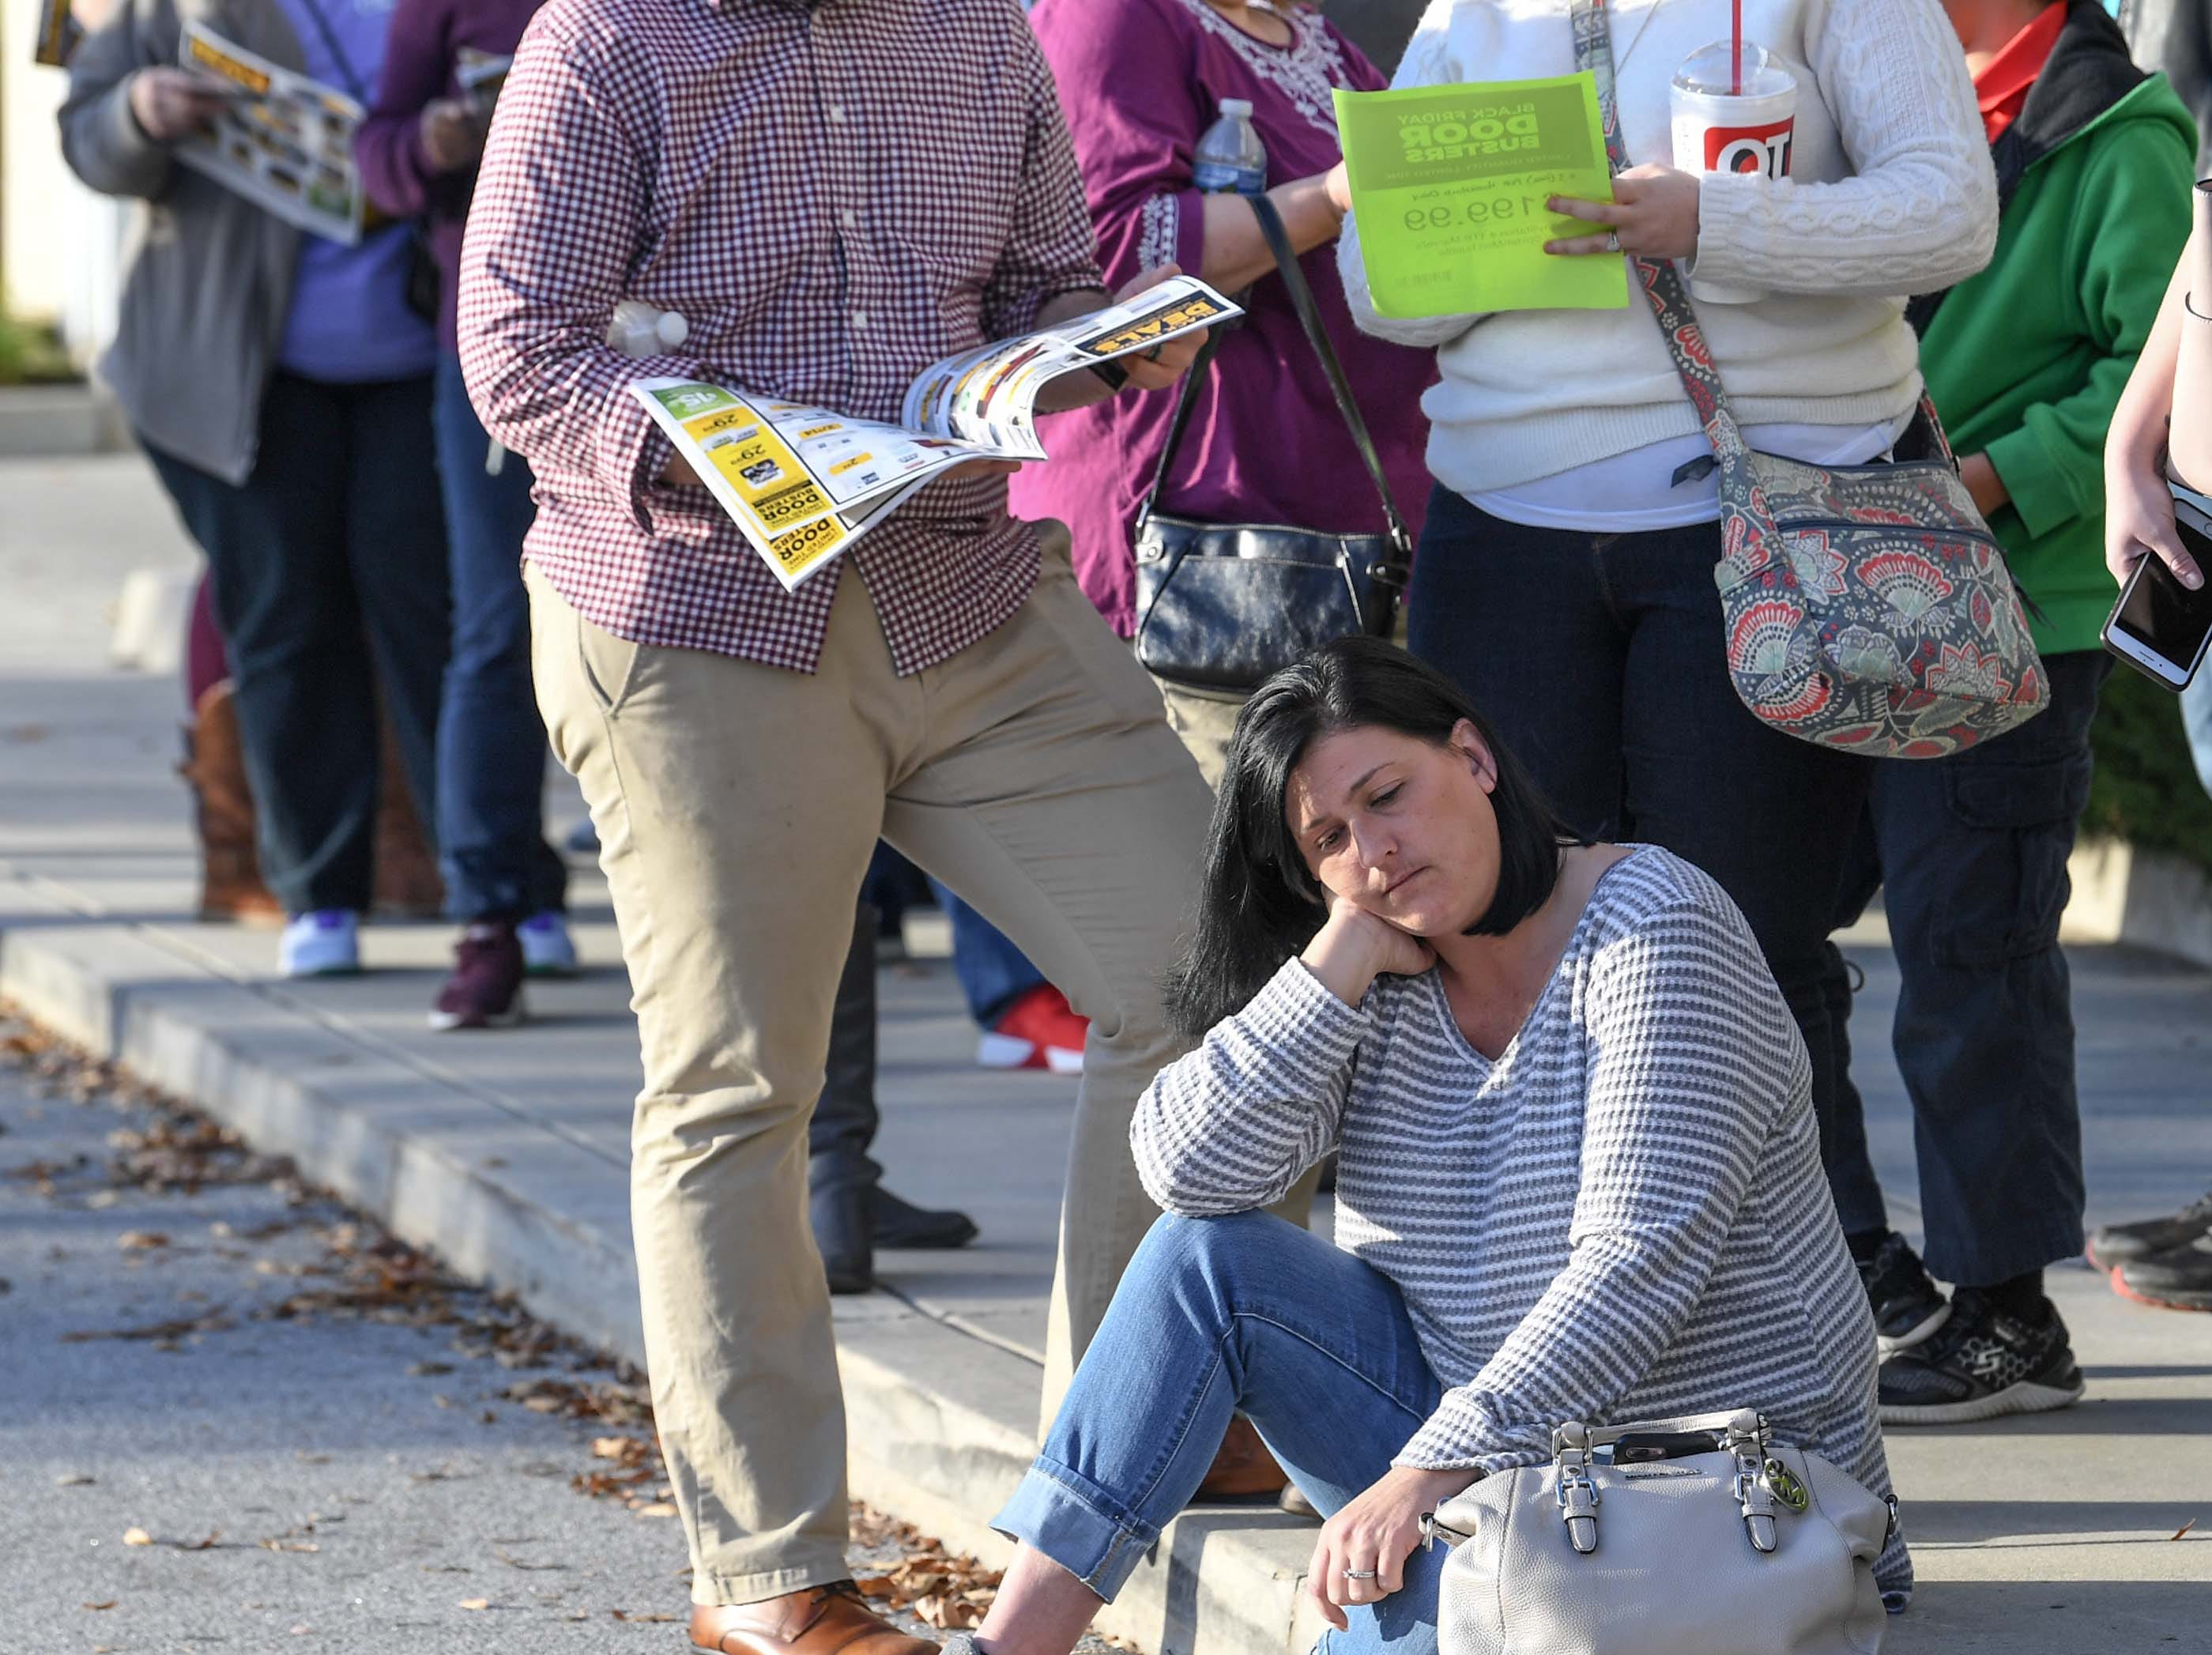 Shae Odom of Easley waits in line for doors to open for Black Friday sales at Kohl's in Anderson on Thanksgiving Day, Thursday, November 22, 2018.